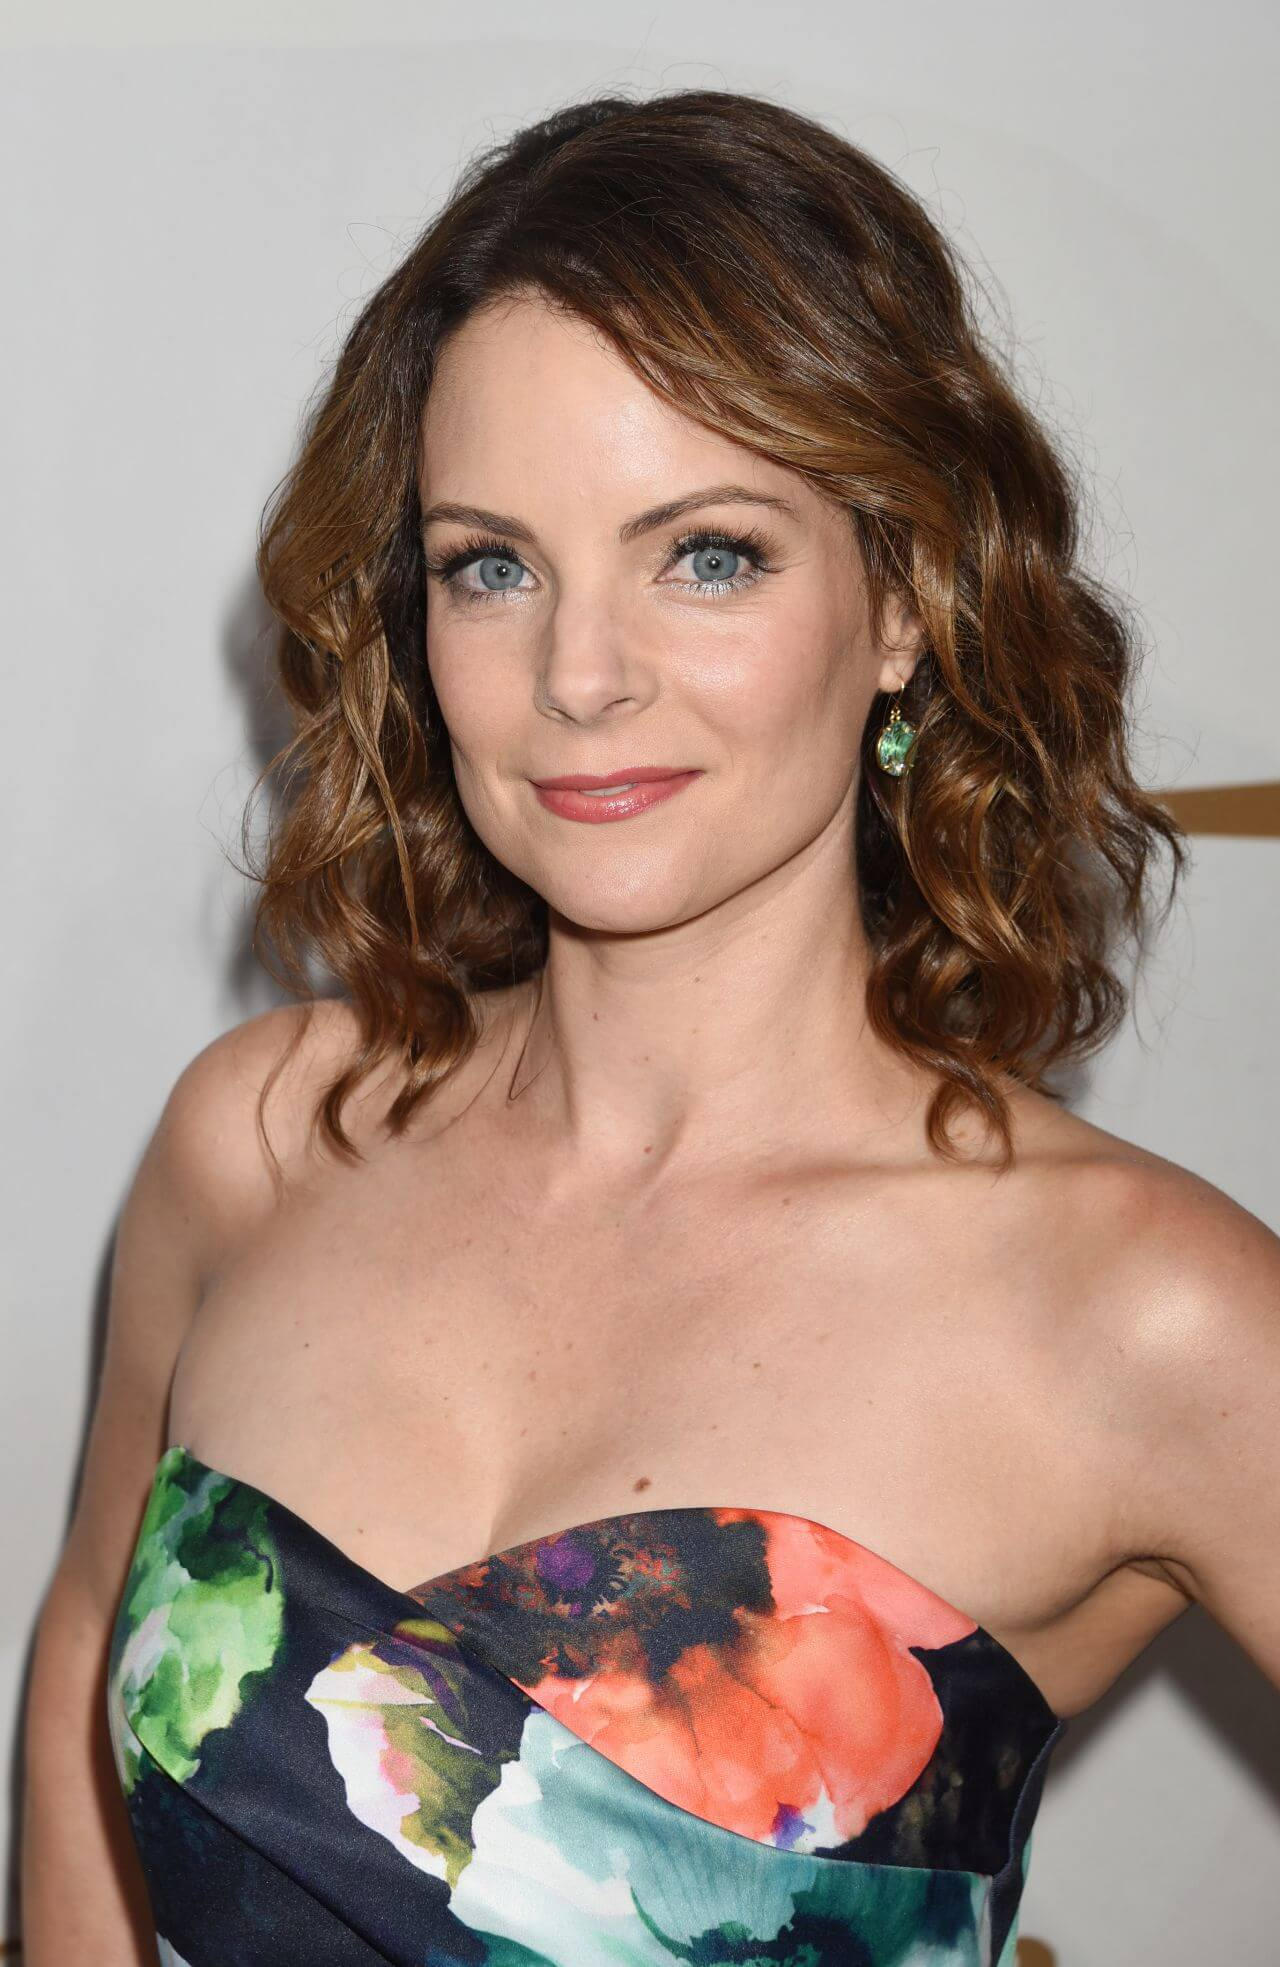 kimberly williams-paisley hot (2)